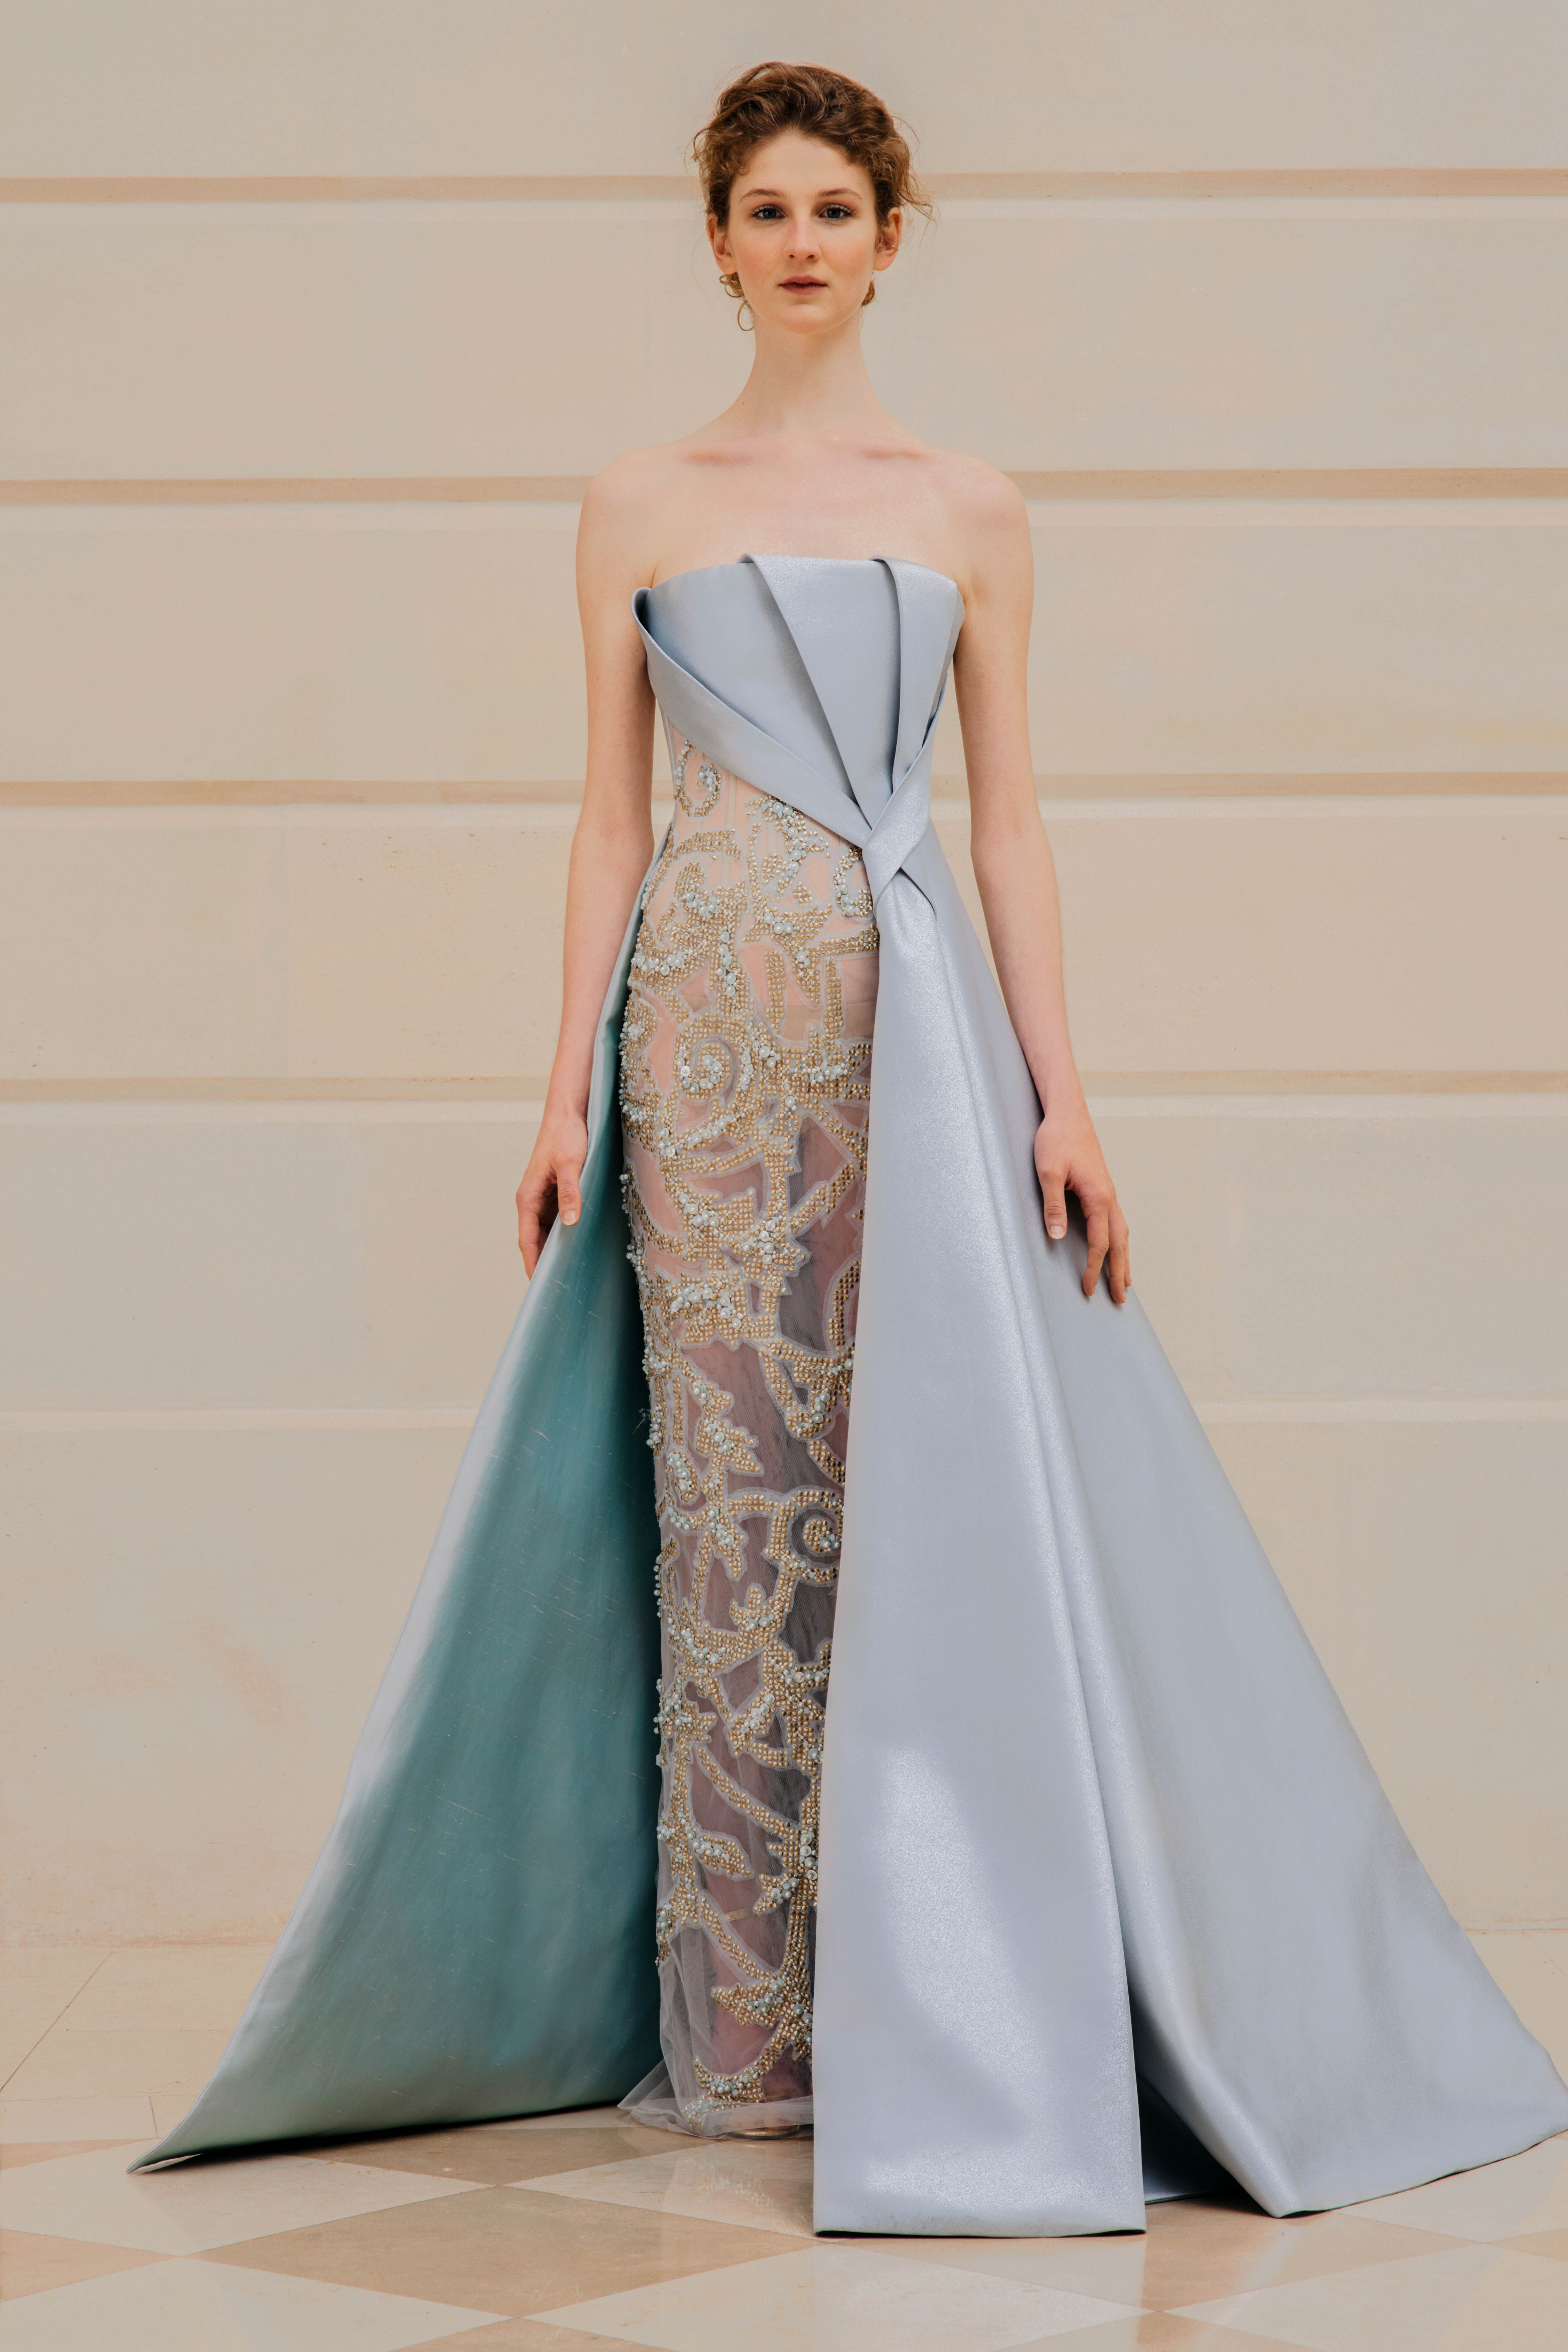 Rami Al Ali Ss18 Haute Couture Collection Powder Blue Mikado Sleeveless Dress With Fully Beaded Skirt In Couture Gowns Fashion Design Dress Fashion Dresses